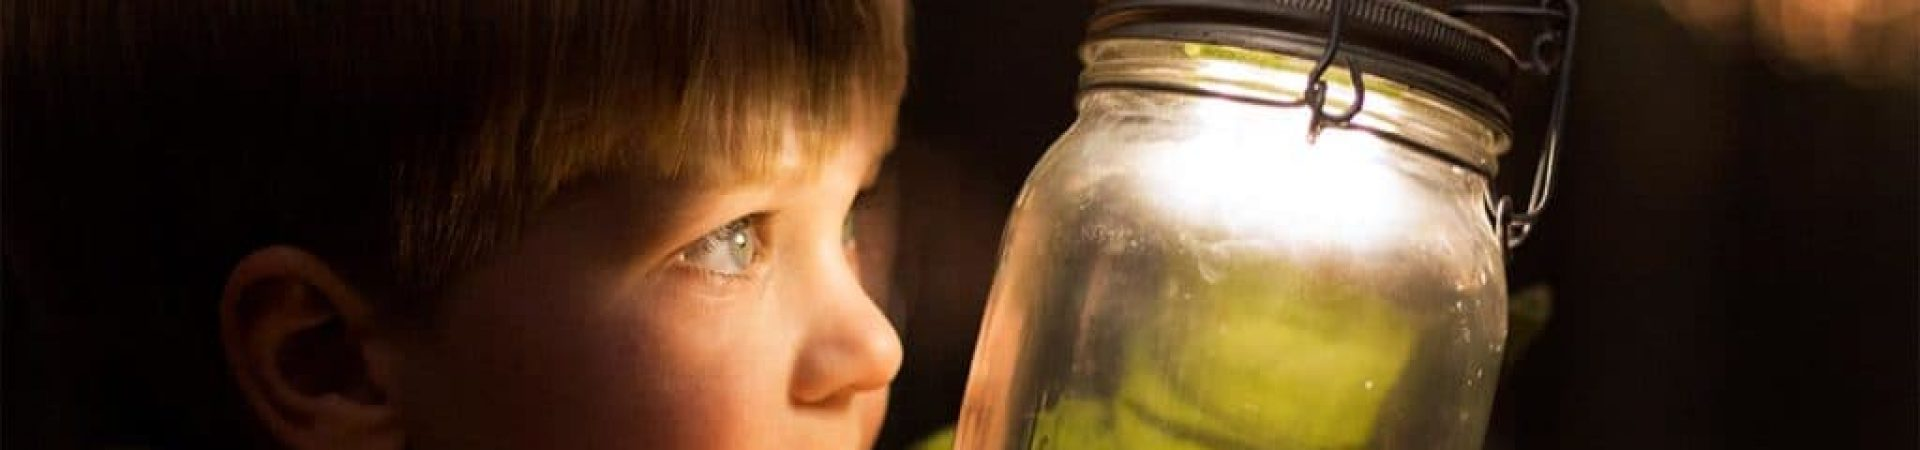 Child Looking at Fireflies in a Jar Kinderfli Ignite Book about Parenting Neurodiverse Children